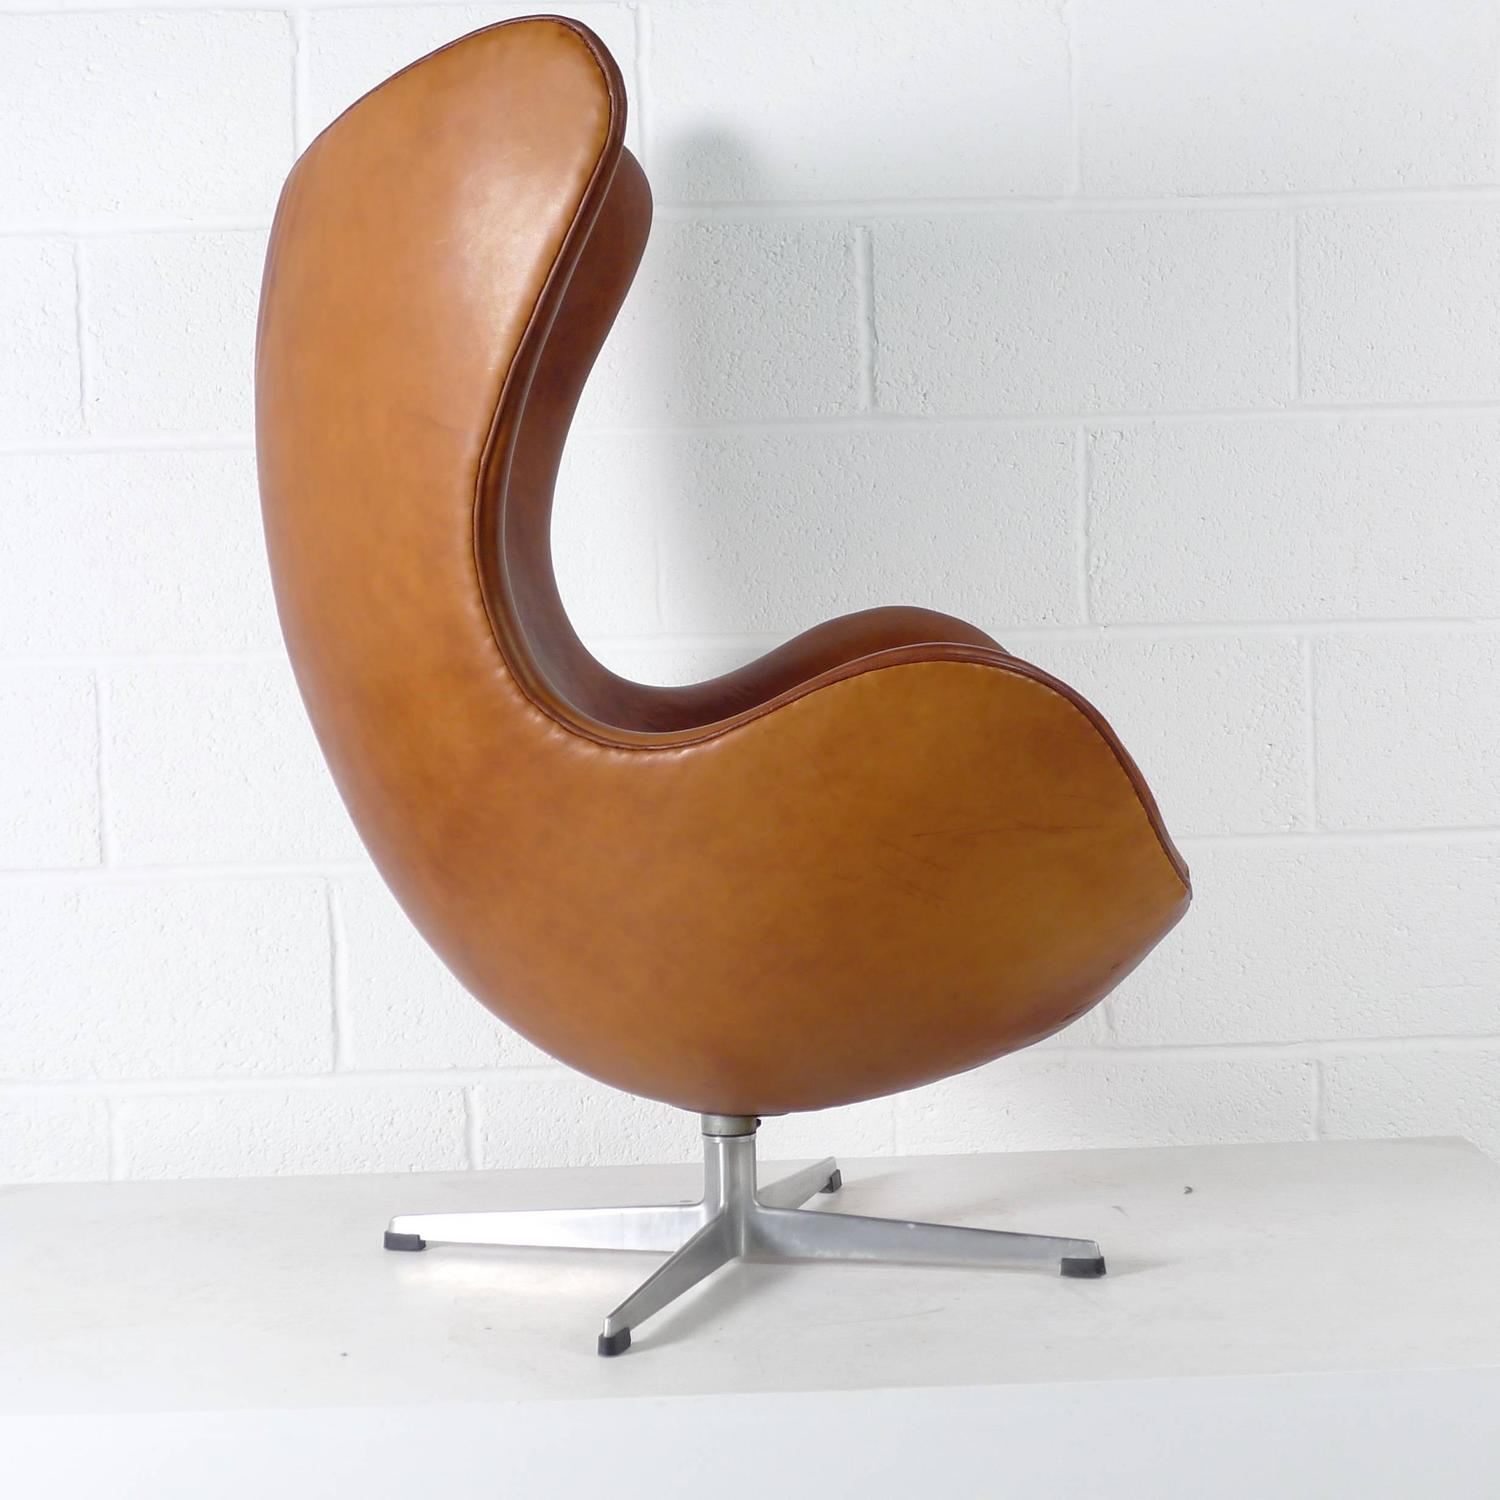 Arne jacobsen egg chair for sale at 1stdibs - Second hand egg chair ...